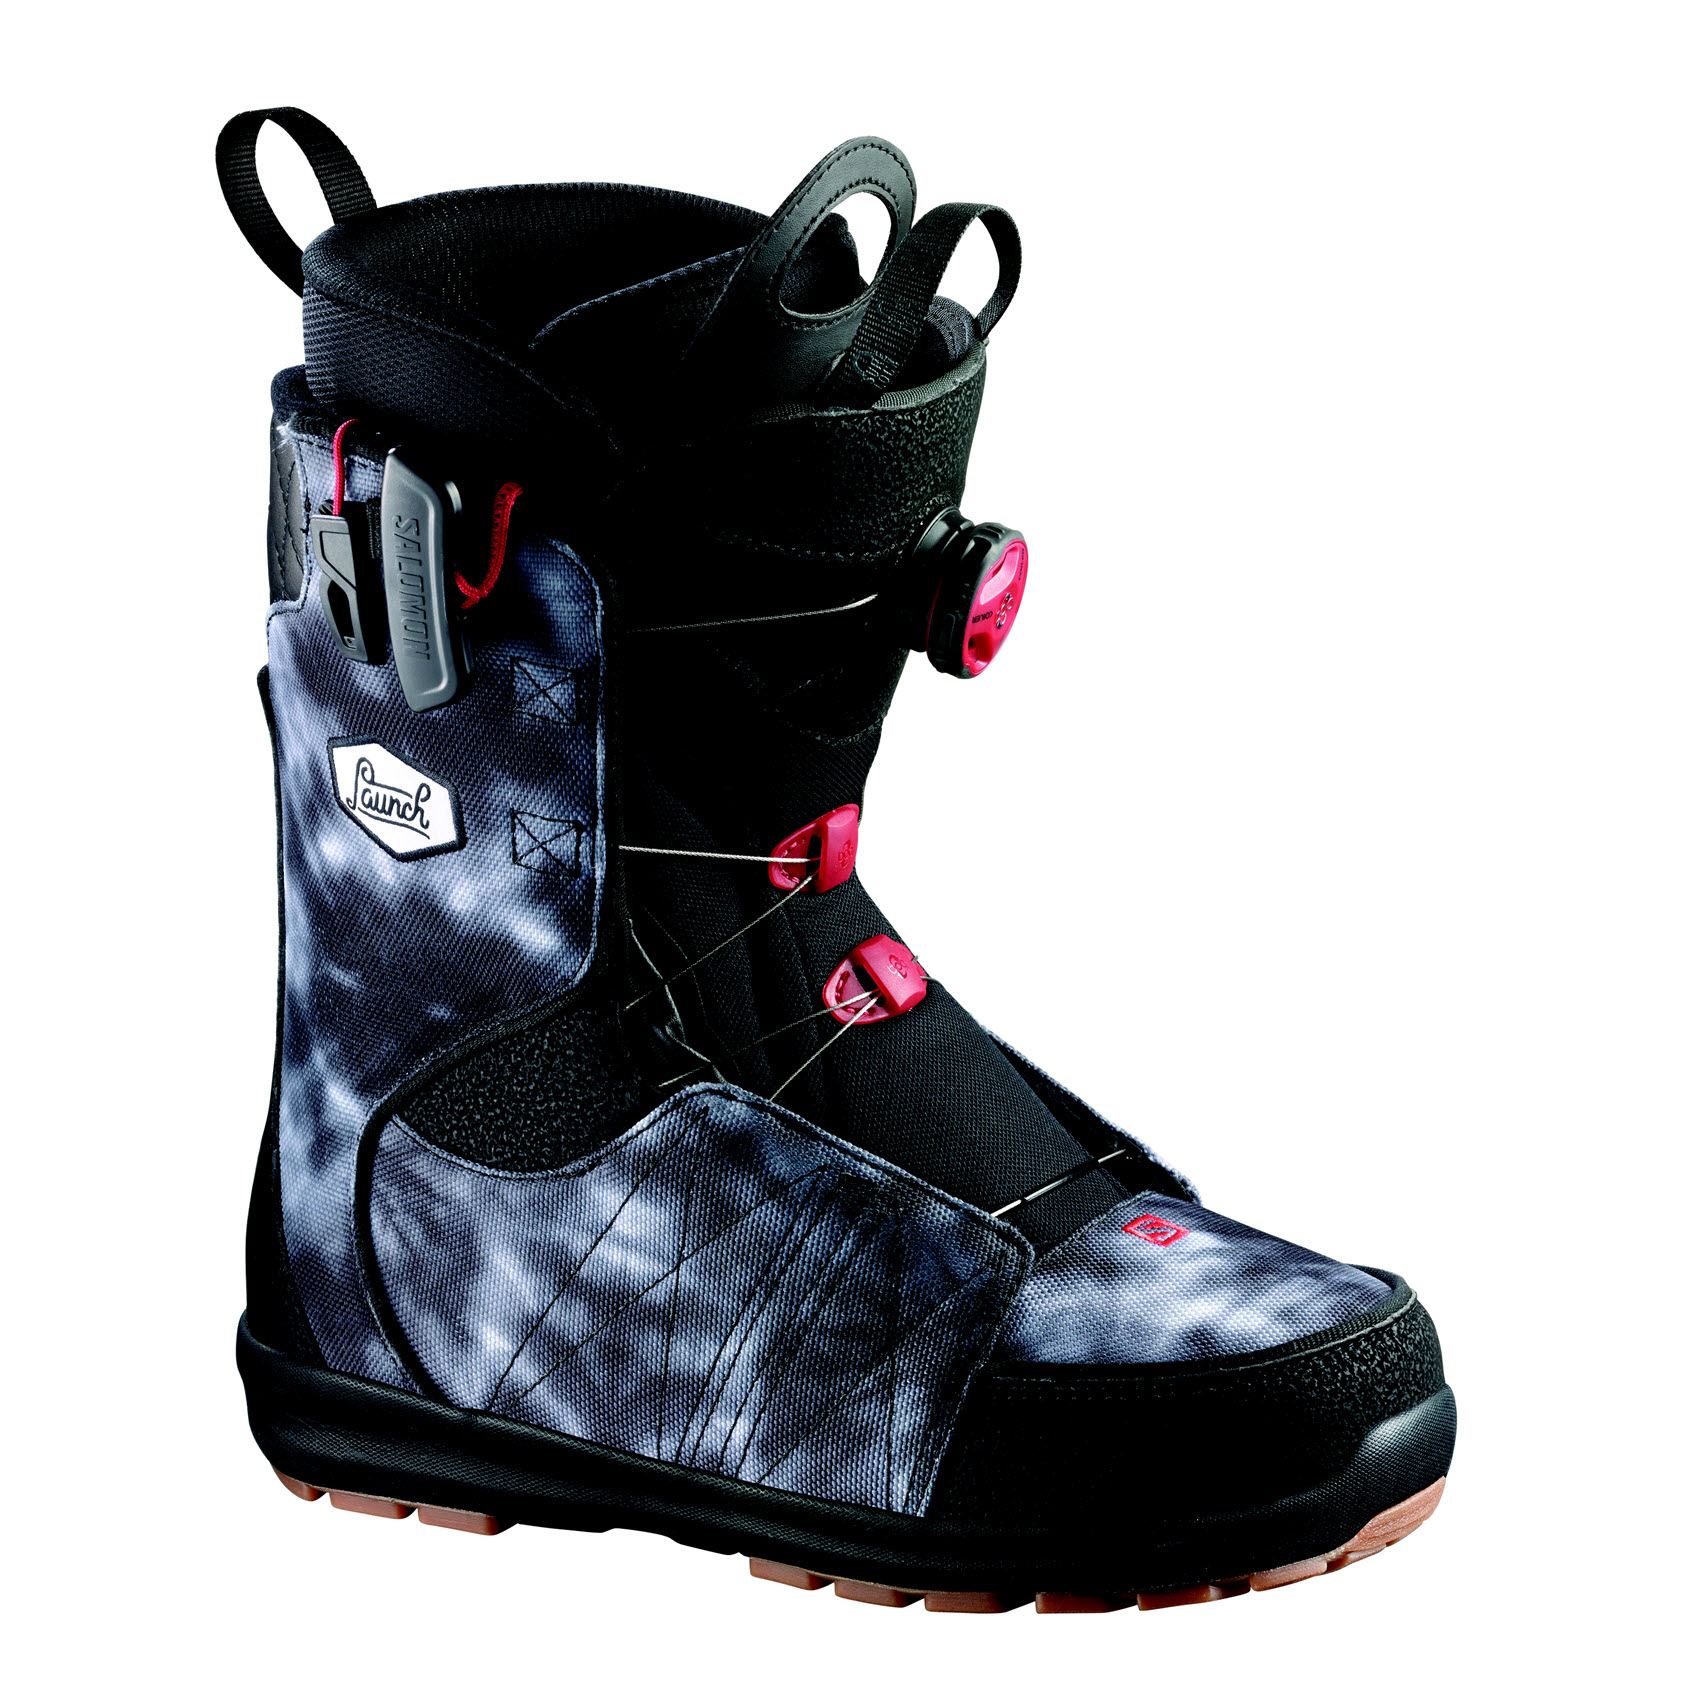 Salomon Launch BOA STR8JKT Mens Snowboard Boots 2015